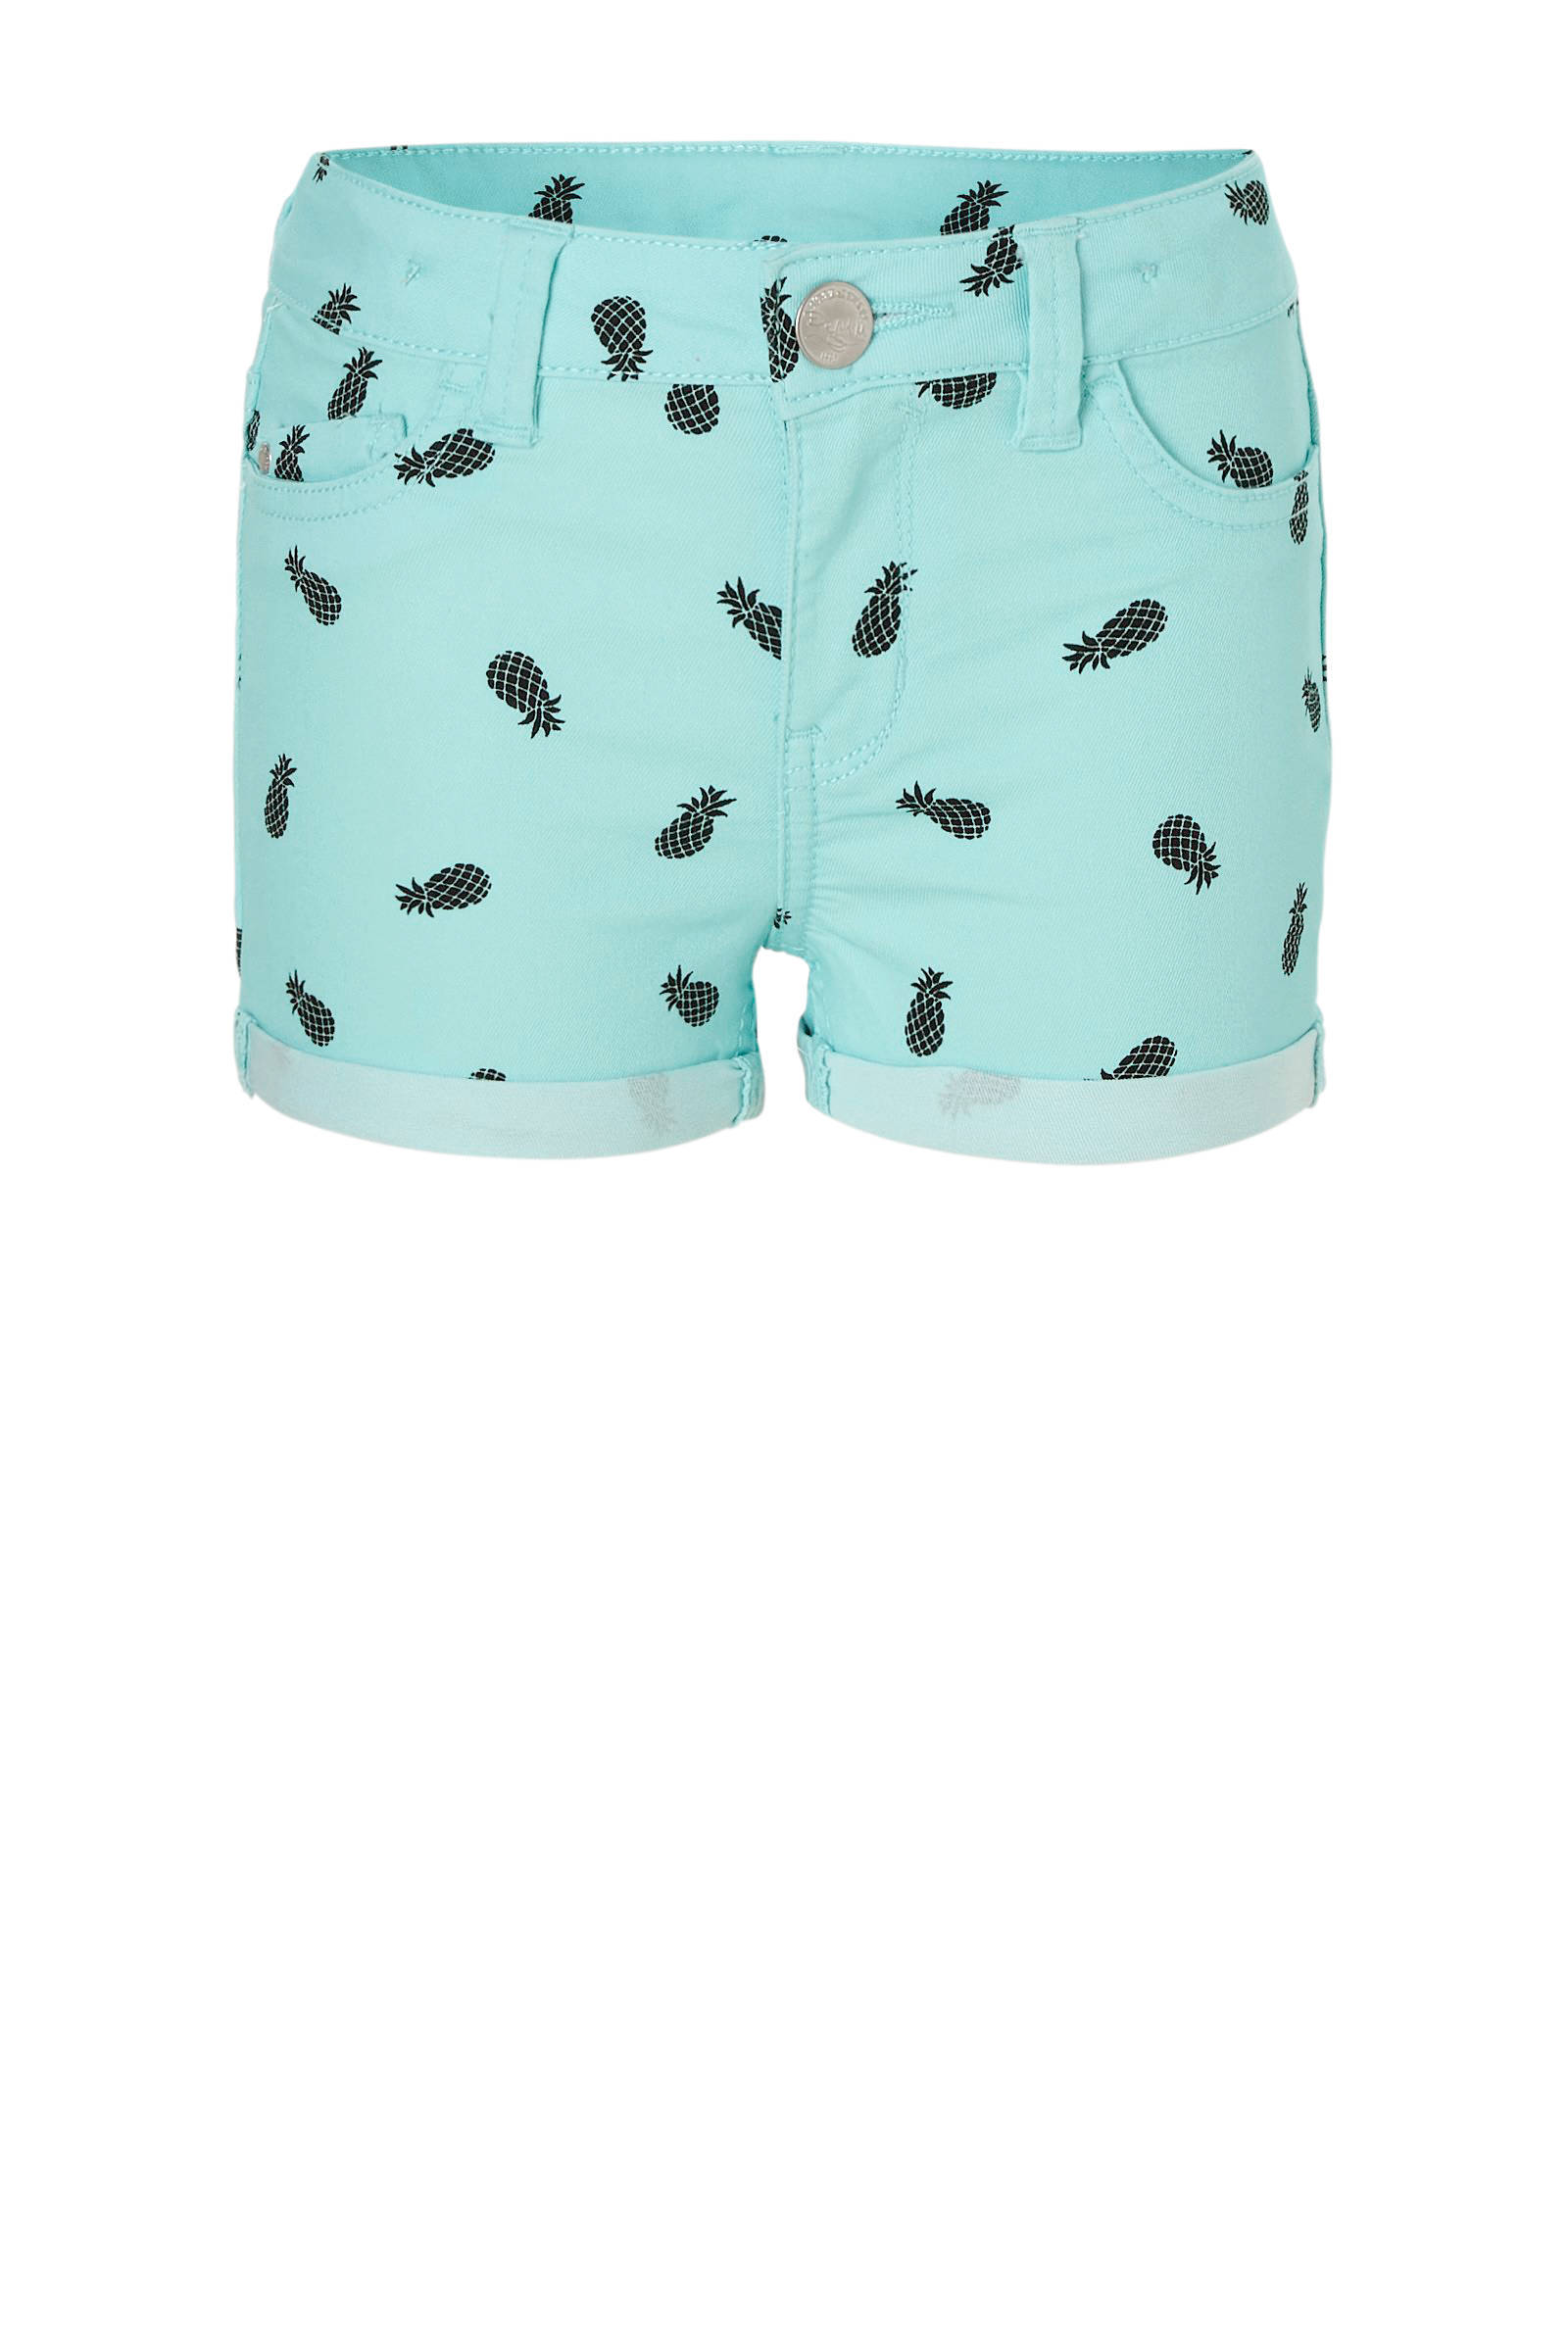 C&A Here & There short met fruitprint turquoise | wehkamp